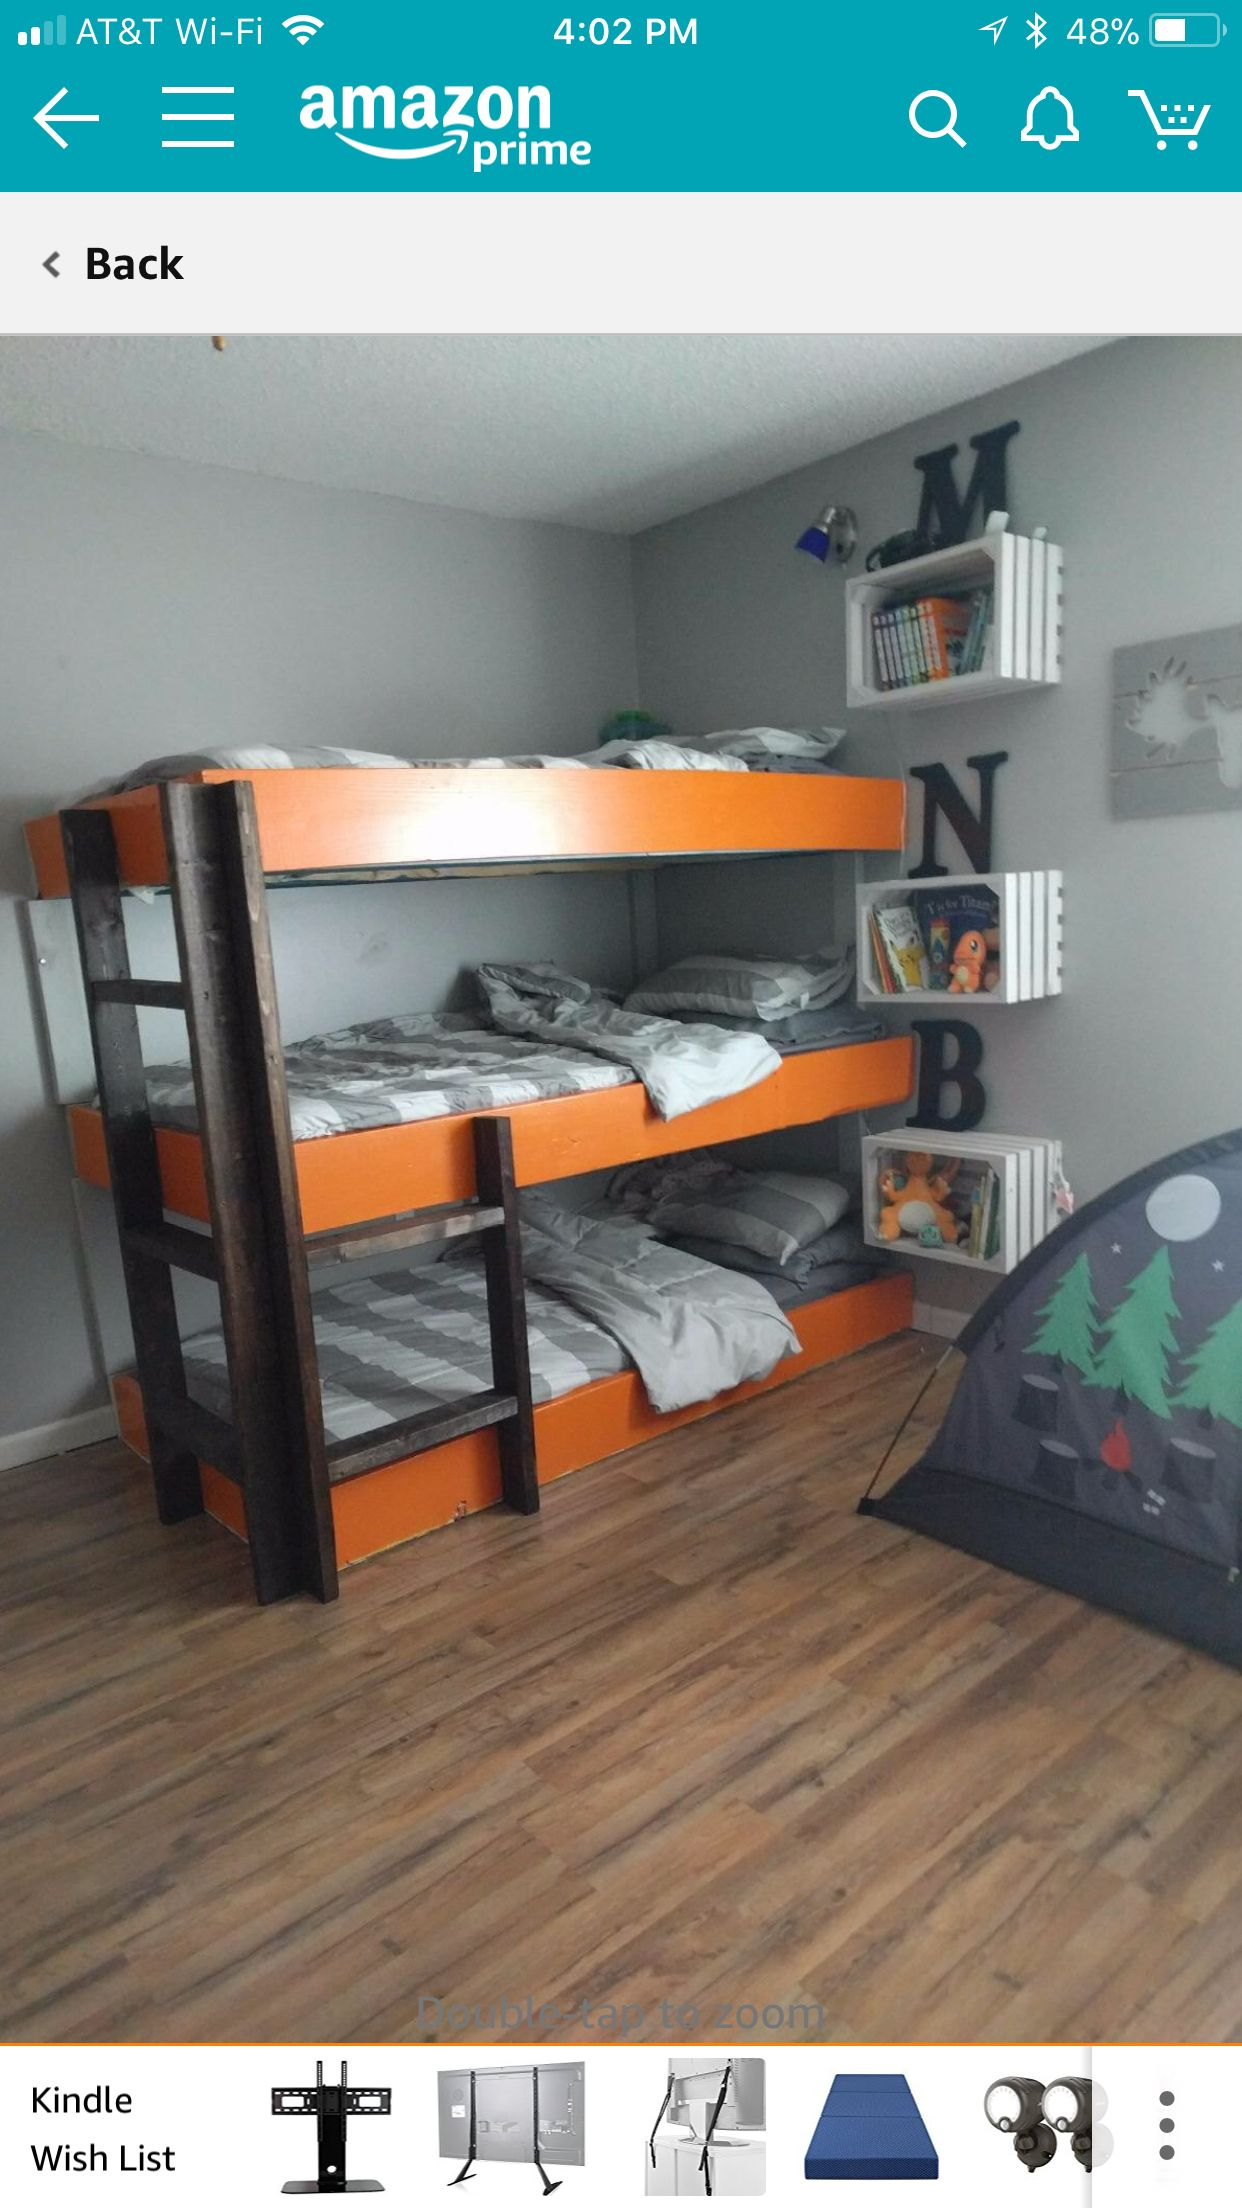 Triple Bunk Beds With Crate Nightstands Attached To The Wall Love